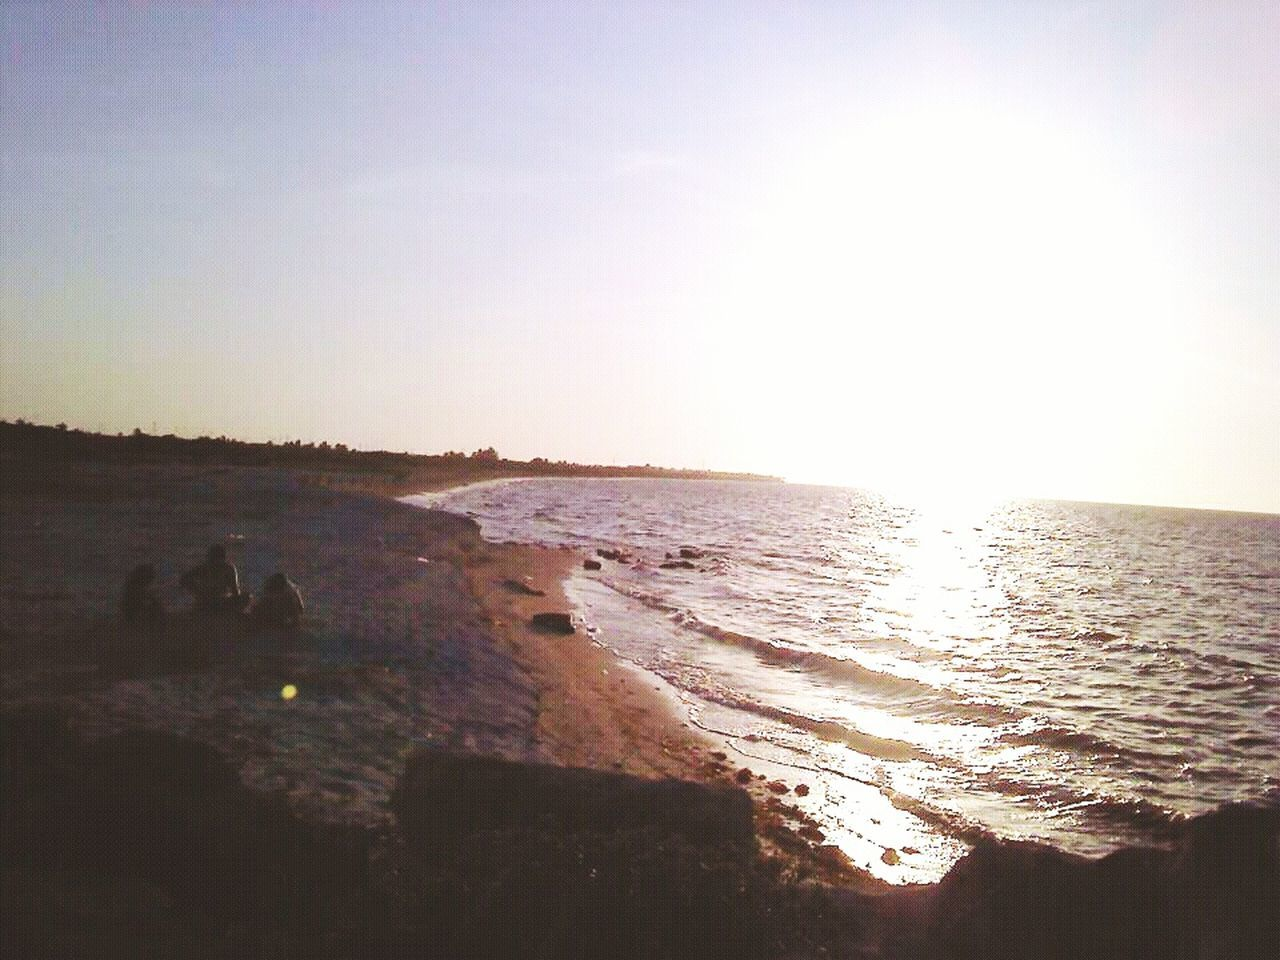 sea, water, nature, sunlight, beauty in nature, tranquil scene, sunset, scenics, clear sky, tranquility, beach, wave, outdoors, horizon over water, silhouette, no people, sky, day